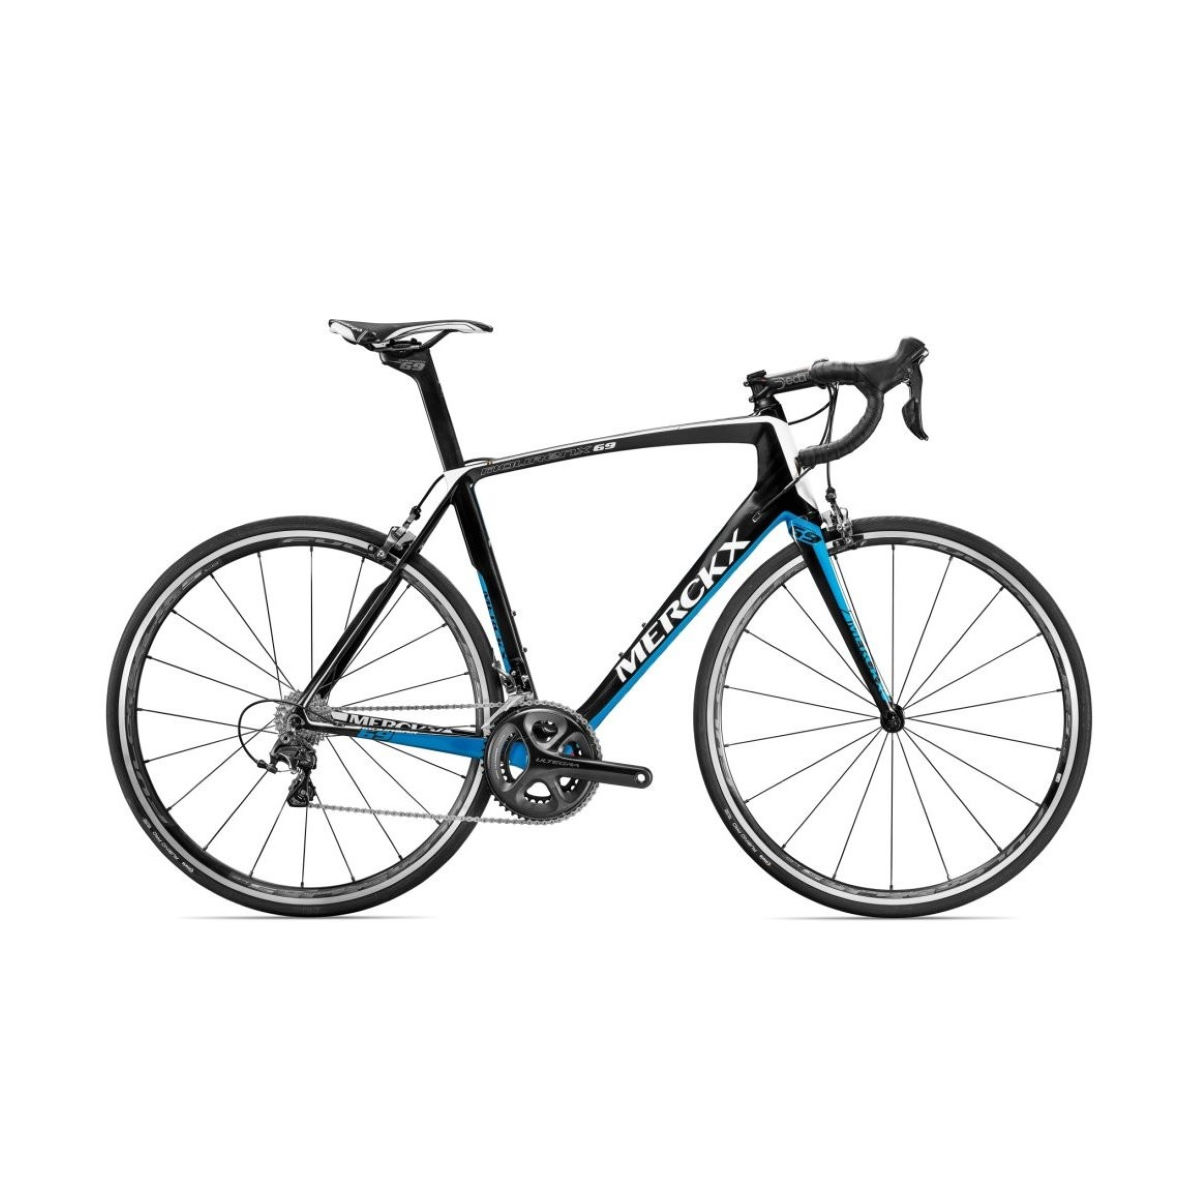 Vélo de route Eddy Merckx Mourenx 69 (Ultegra, 2017) - XL Stock Bike